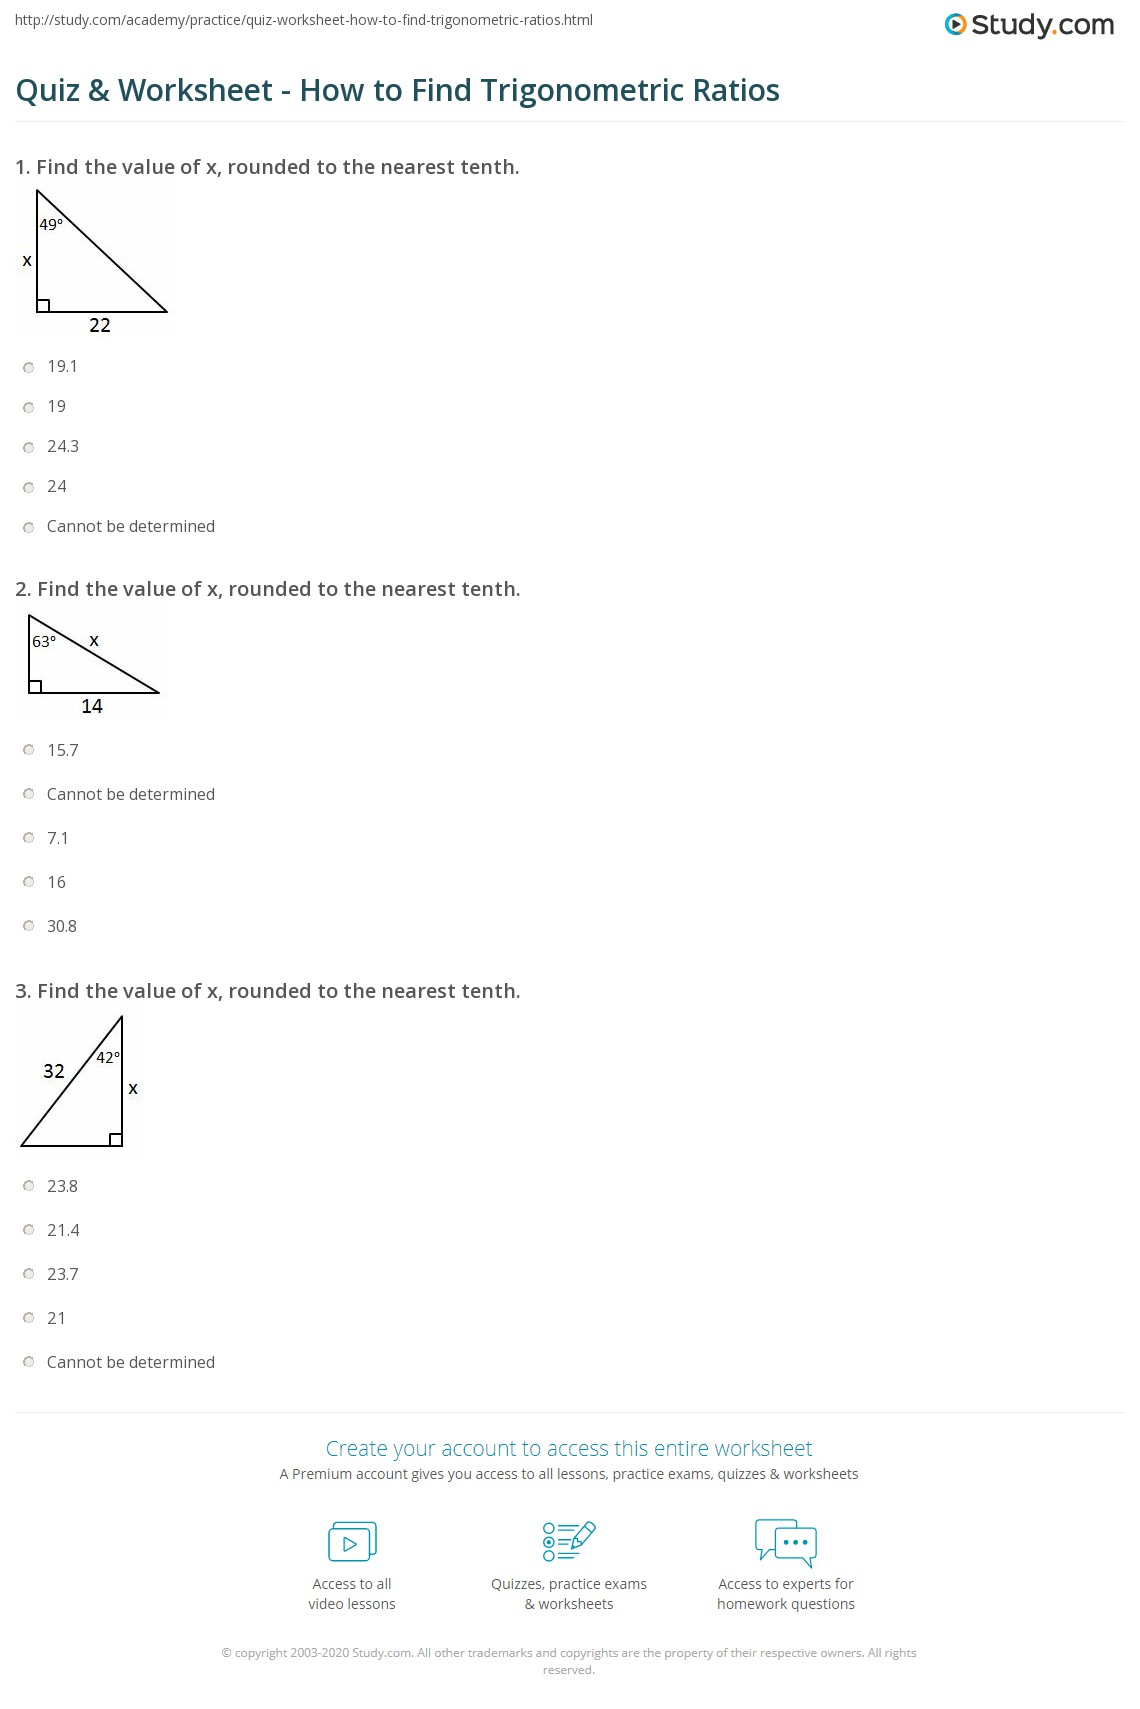 Quiz Worksheet How To Find Trigonometric Ratios Study